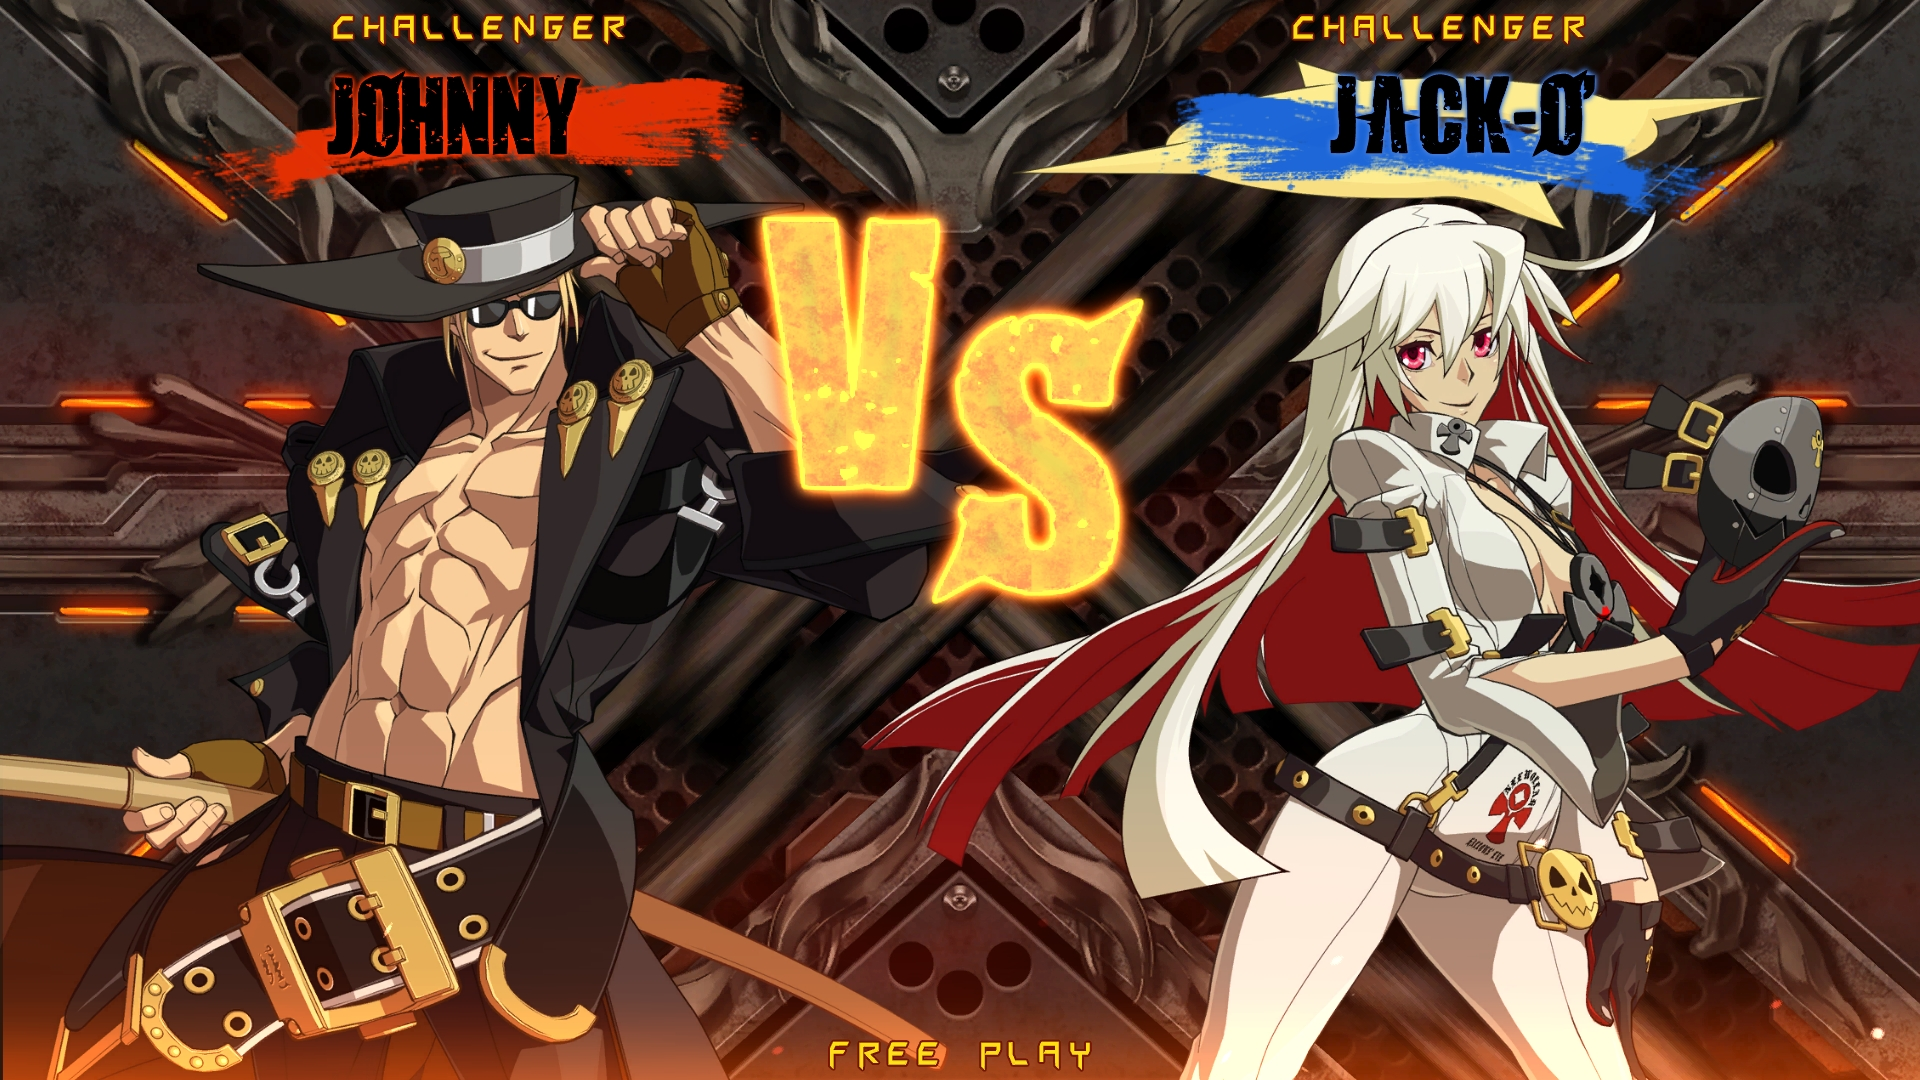 HQ Guilty Gear Wallpapers | File 1392.29Kb